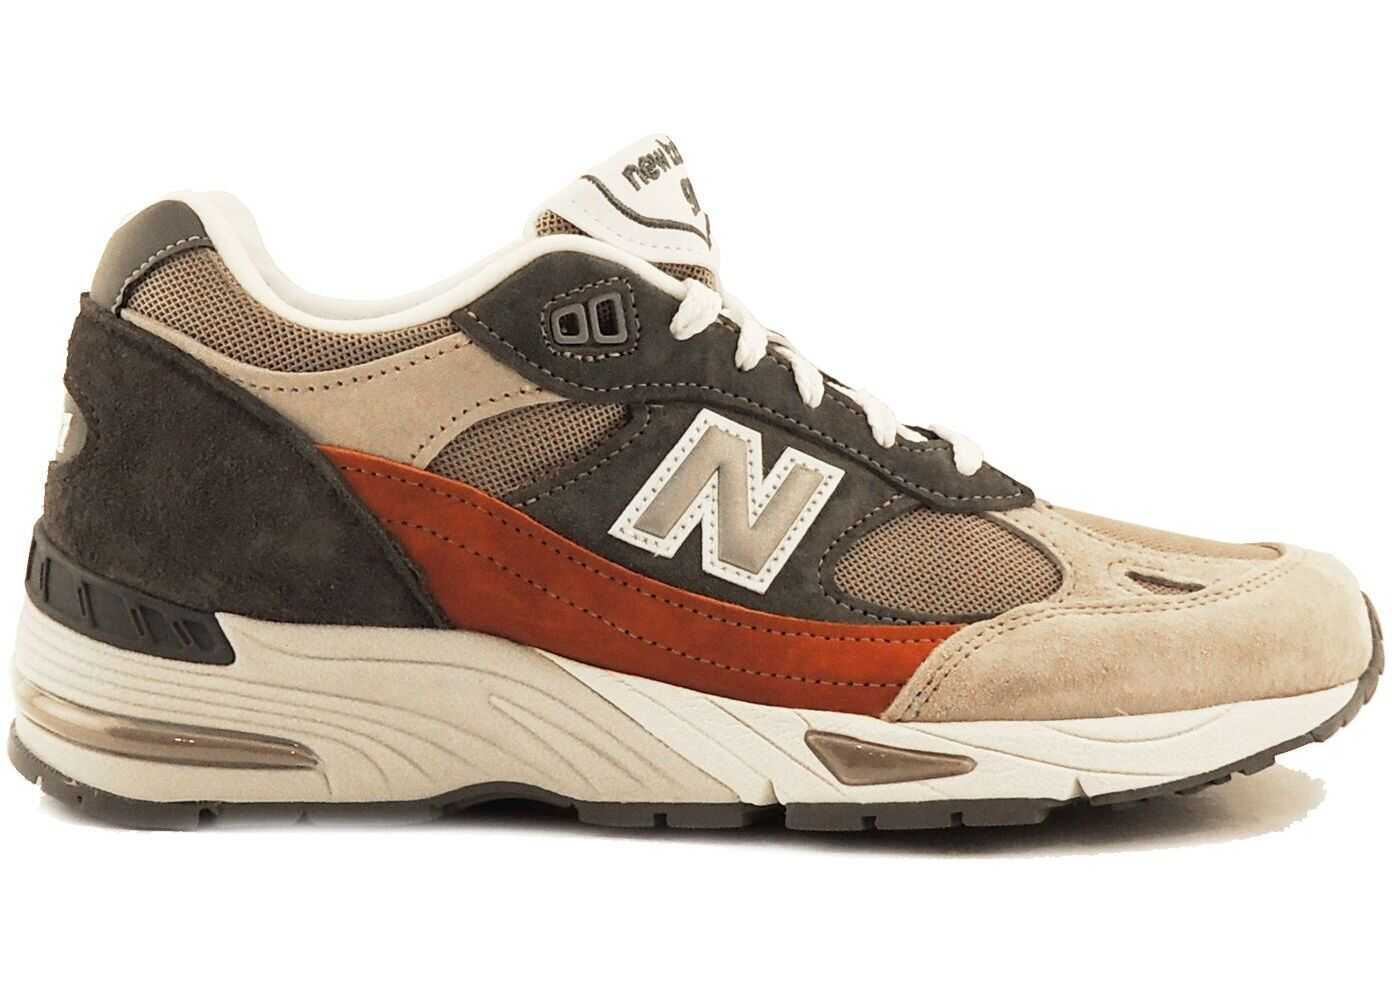 New Balance Leather Sneakers MULTICOLOR